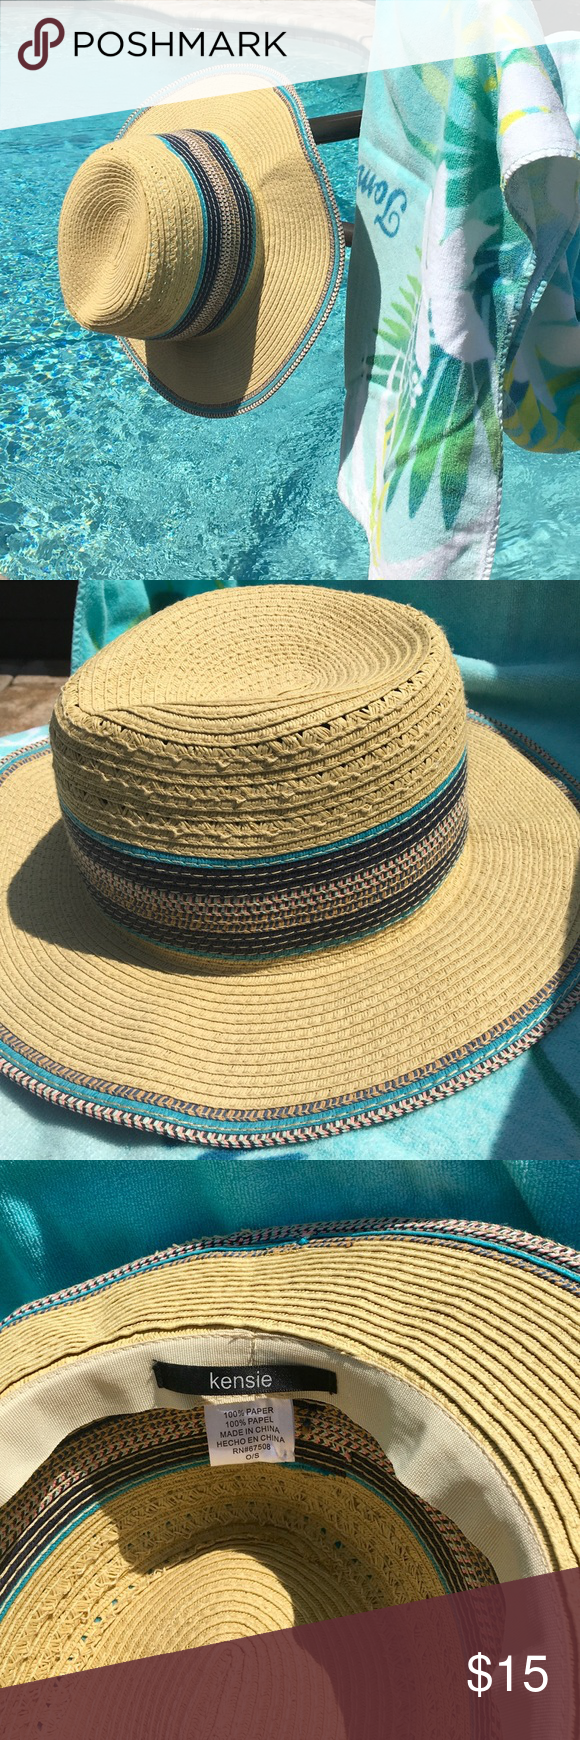 Kensie Straw Hat For Summer Kensie Straw Hat Accent Colors